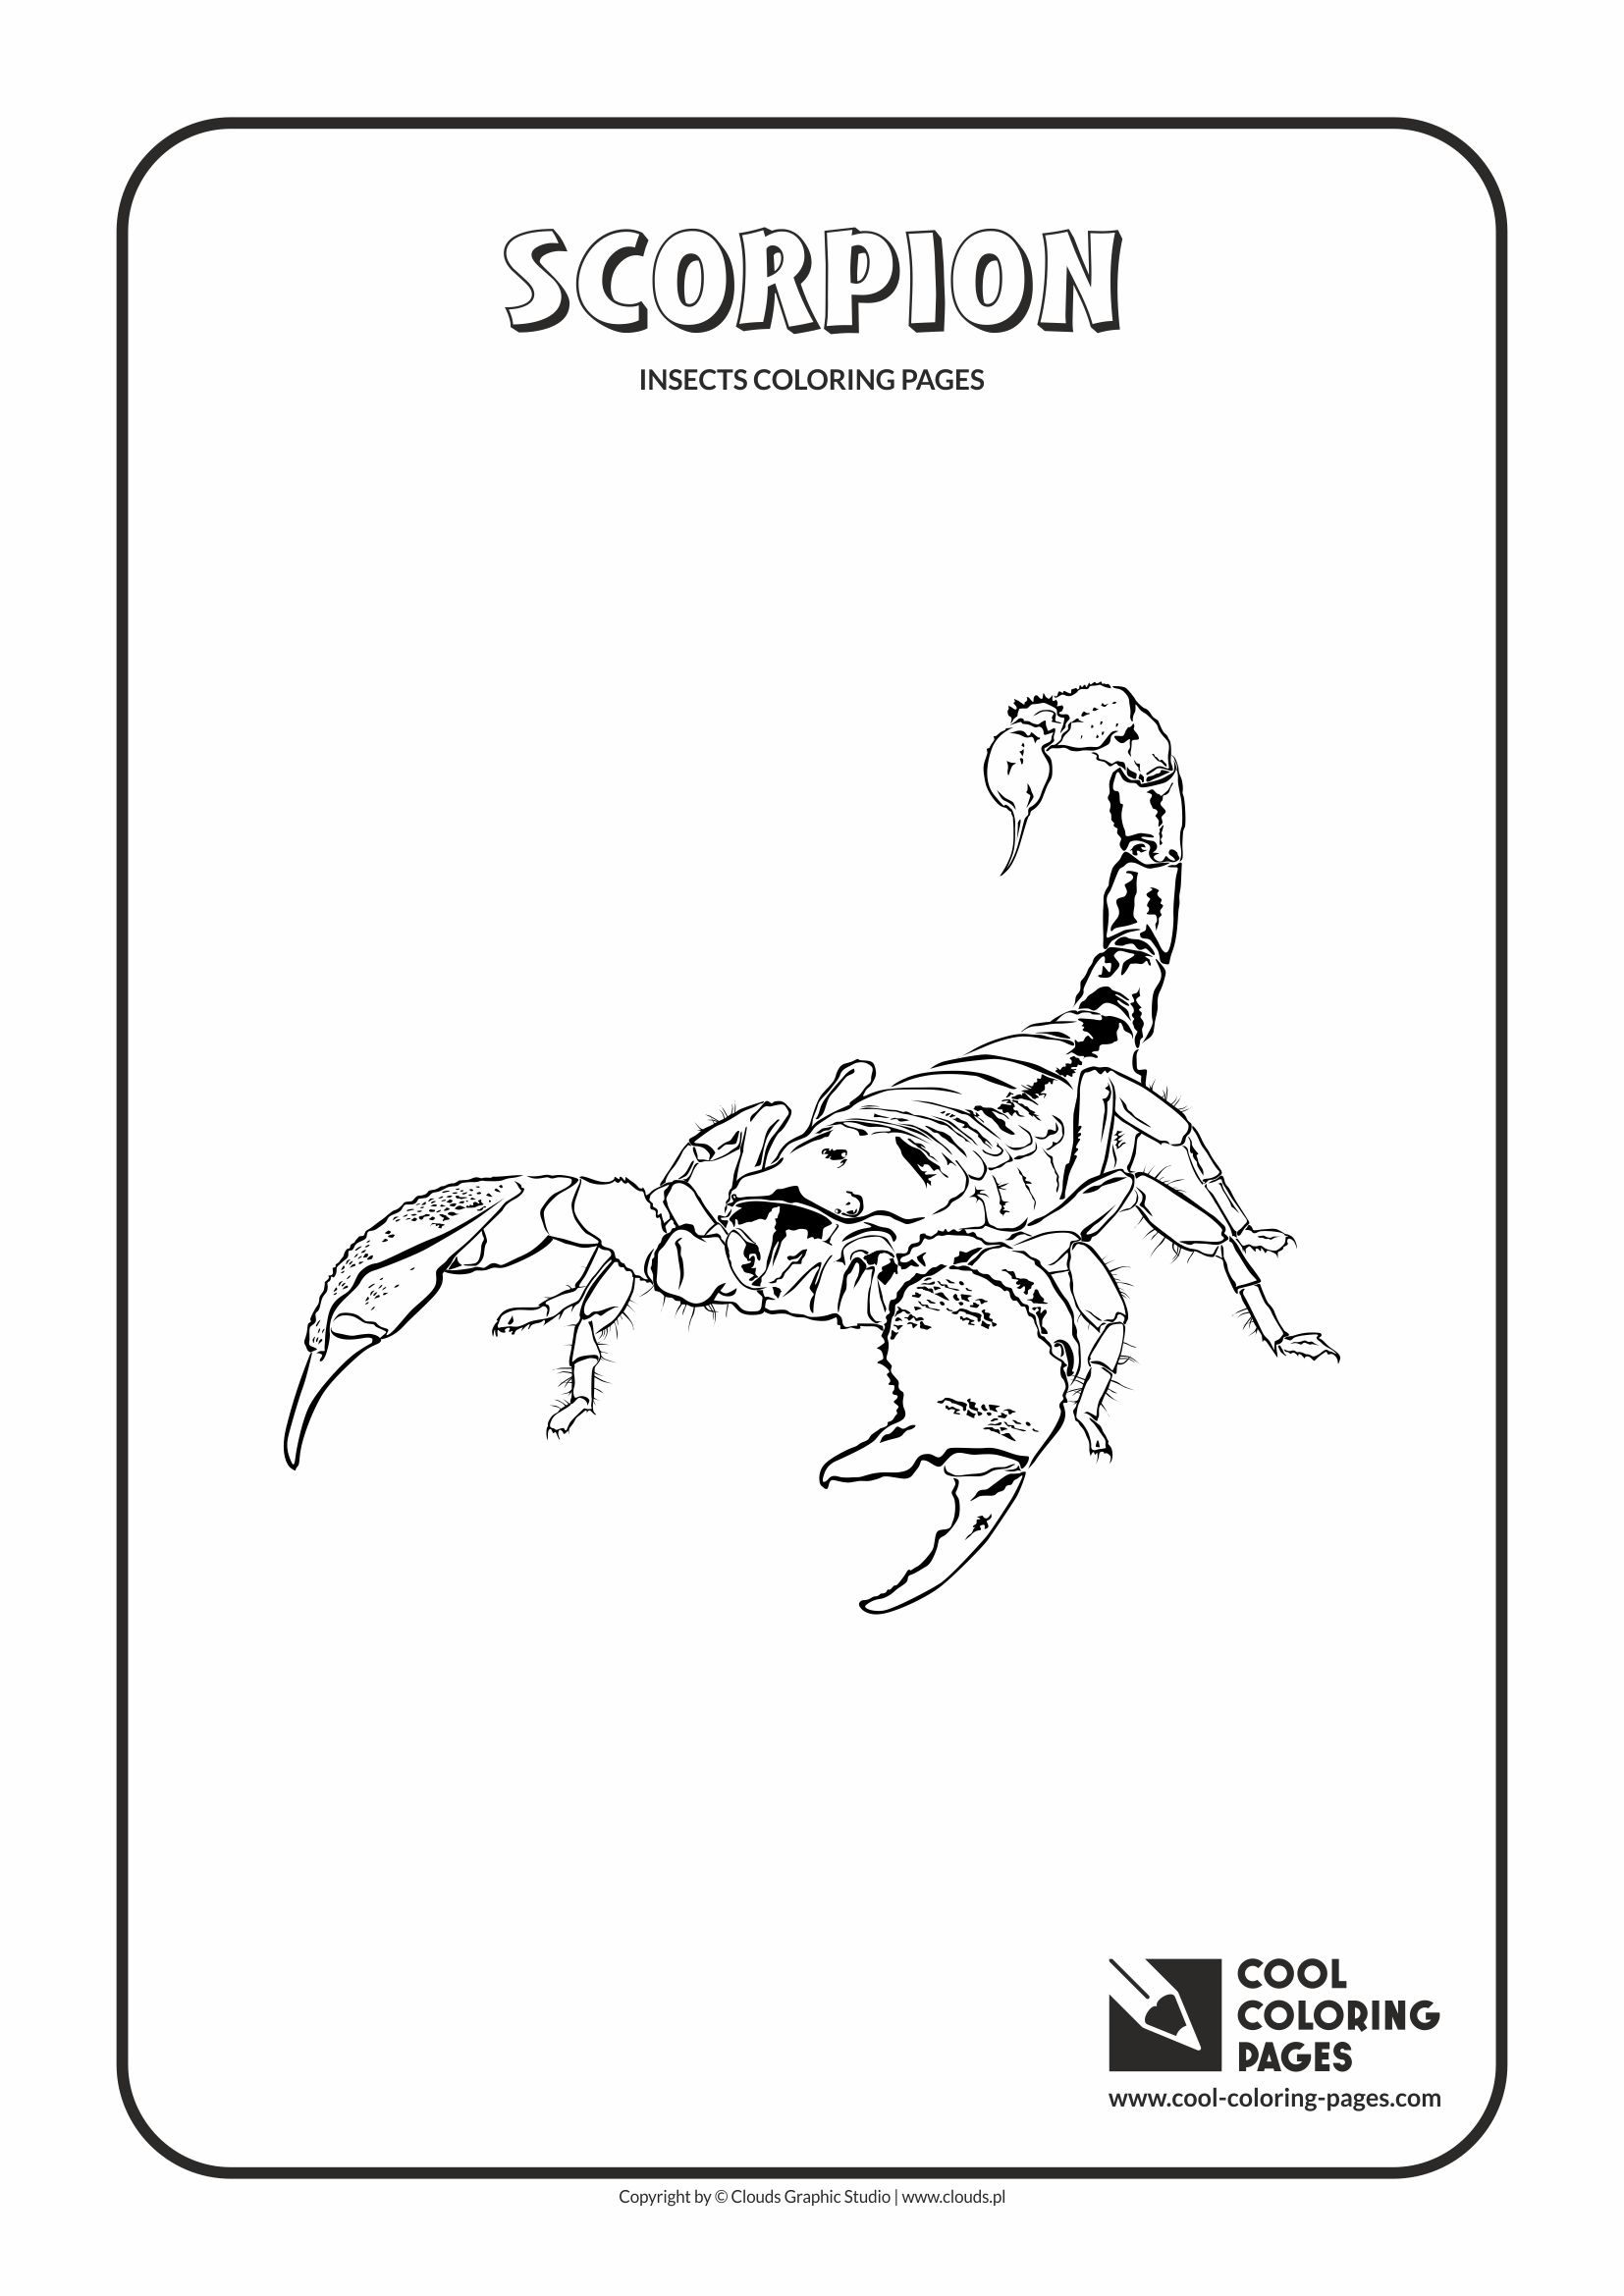 Cool Coloring Pages - Animals / Scorpion / Coloring page with scorpion